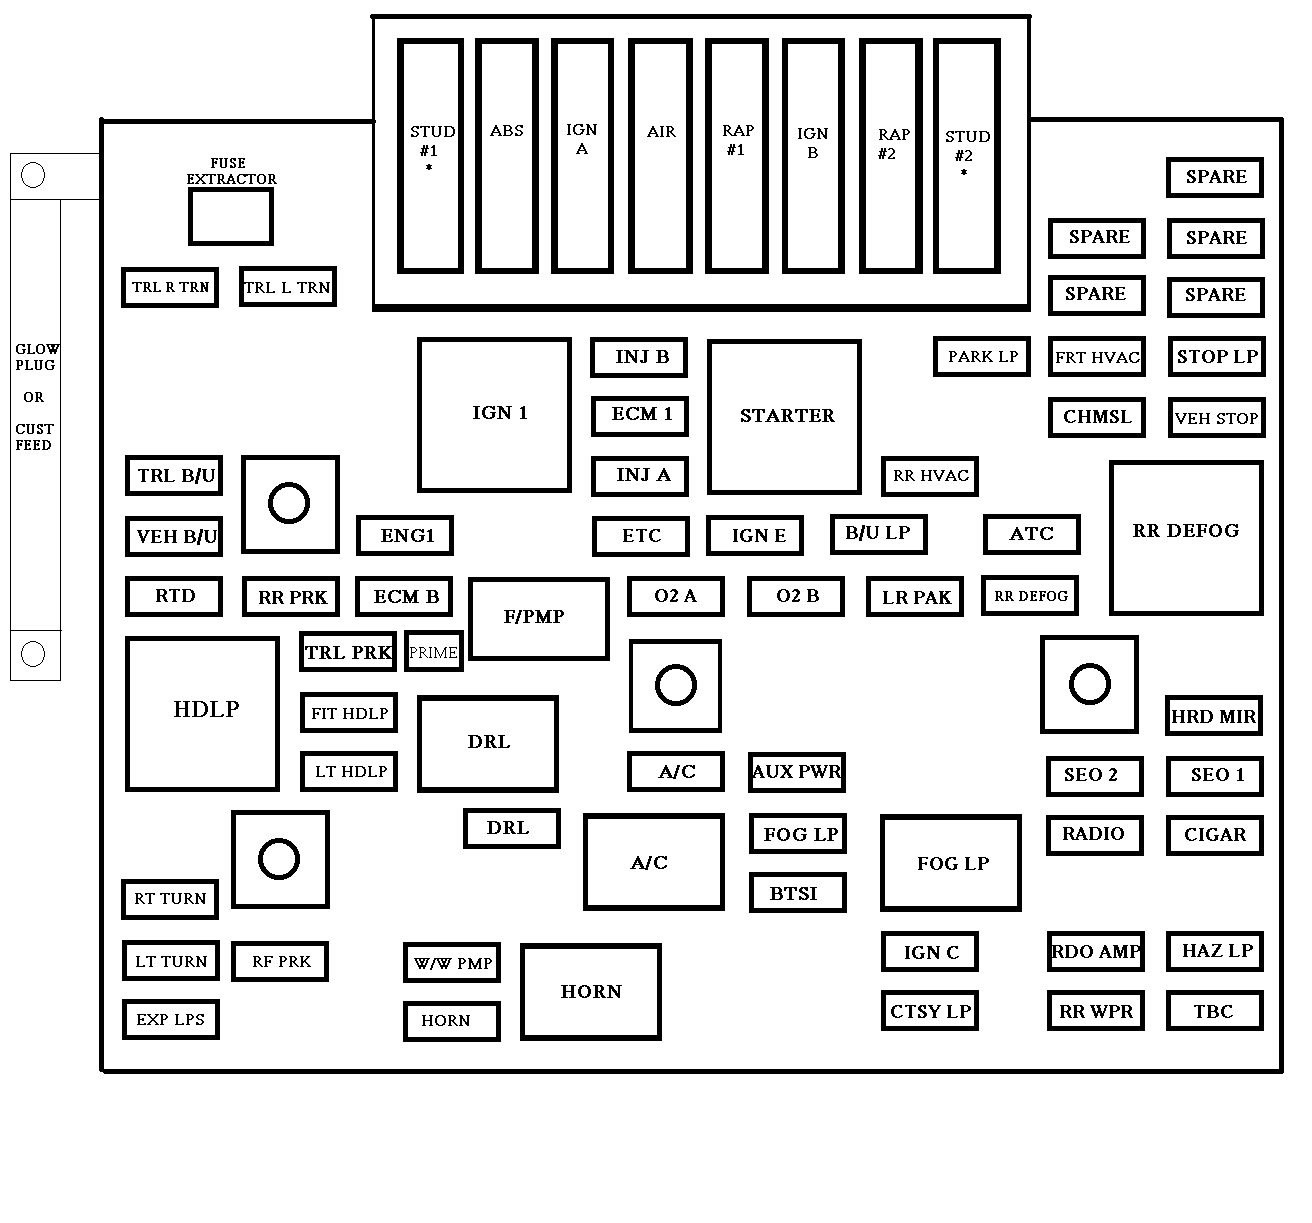 Chevrolet Avalanche Gmt 800 2001 2006 Fuse Box Diagram on chevrolet uplander 2005 fuse box diagram